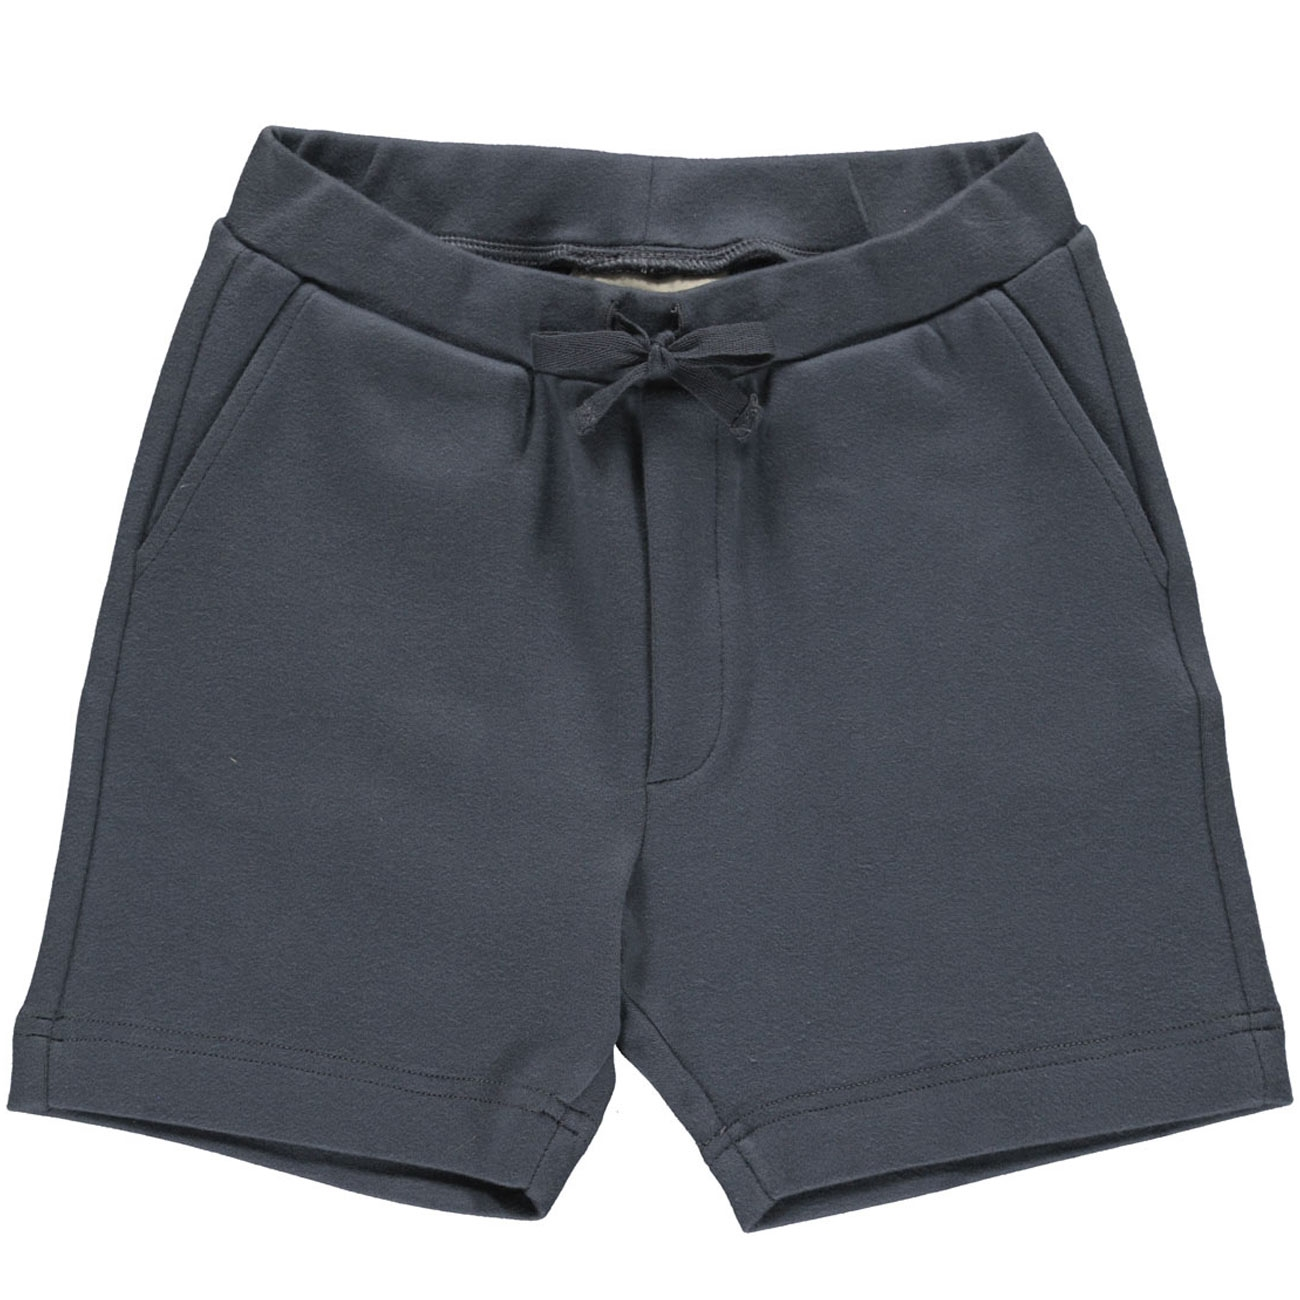 marmar-HS20-shorts-sweatshorts-sweat-blue-pascal-